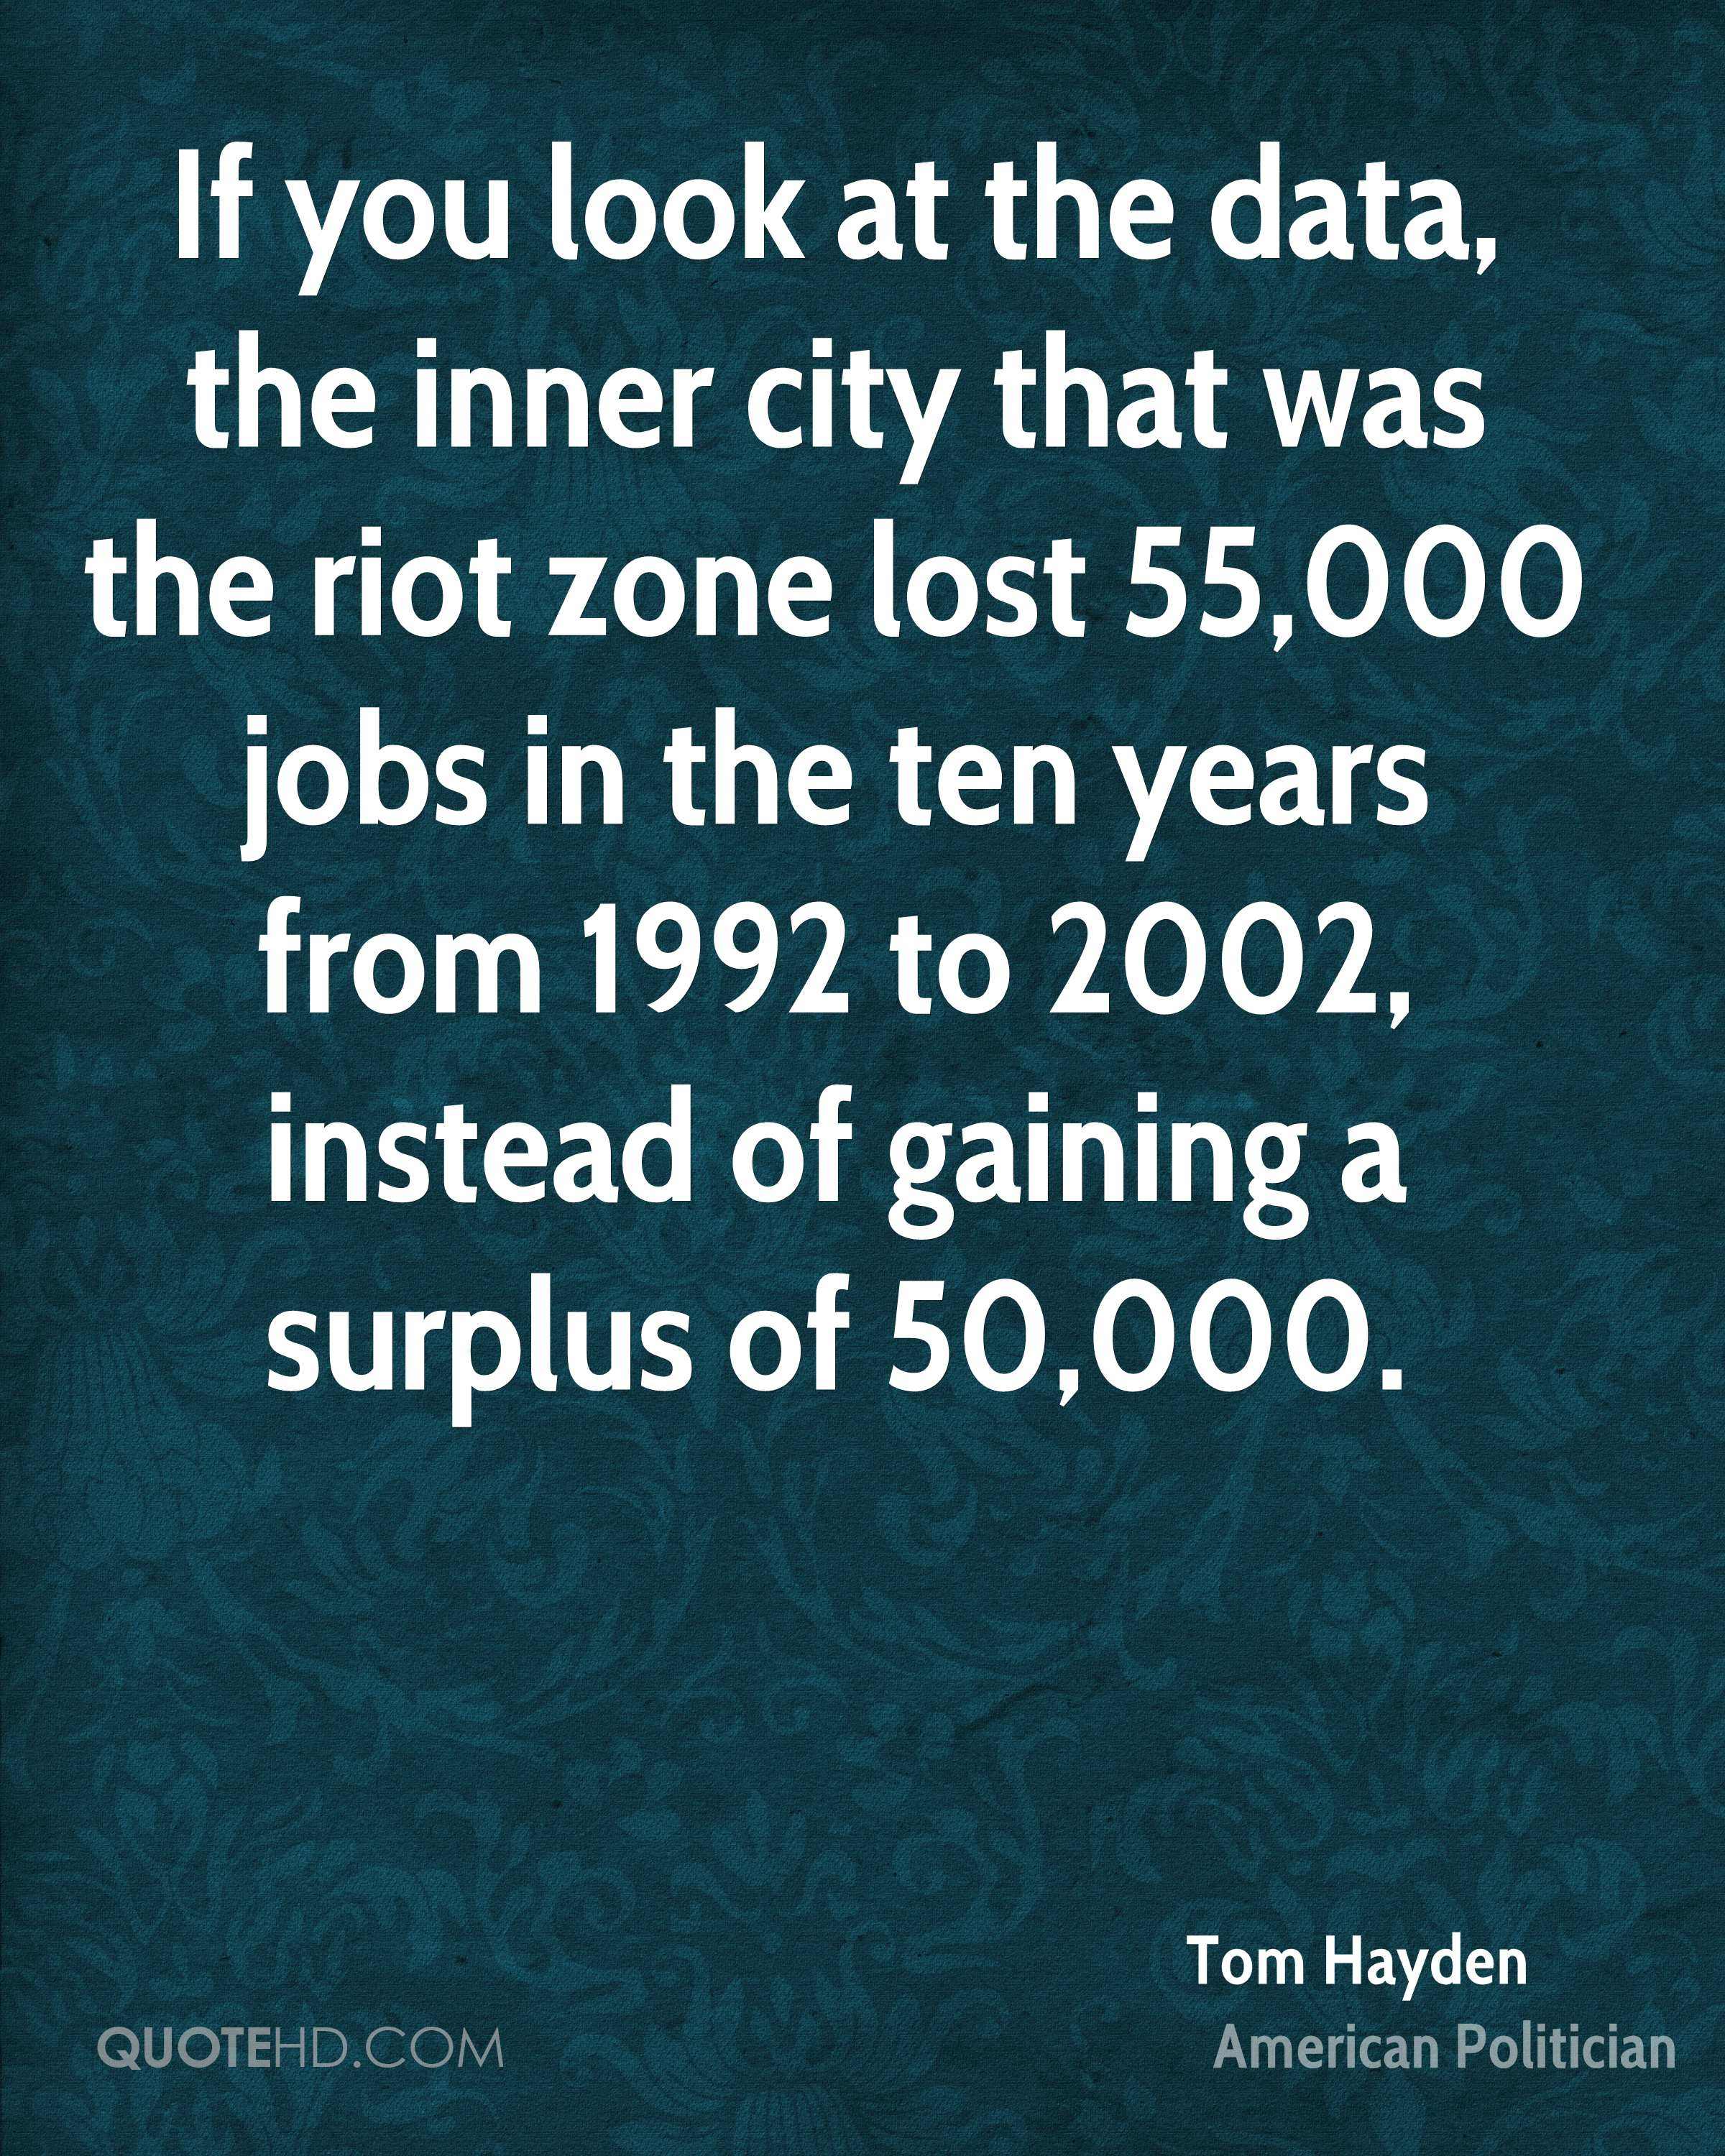 If you look at the data, the inner city that was the riot zone lost 55,000 jobs in the ten years from 1992 to 2002, instead of gaining a surplus of 50,000.